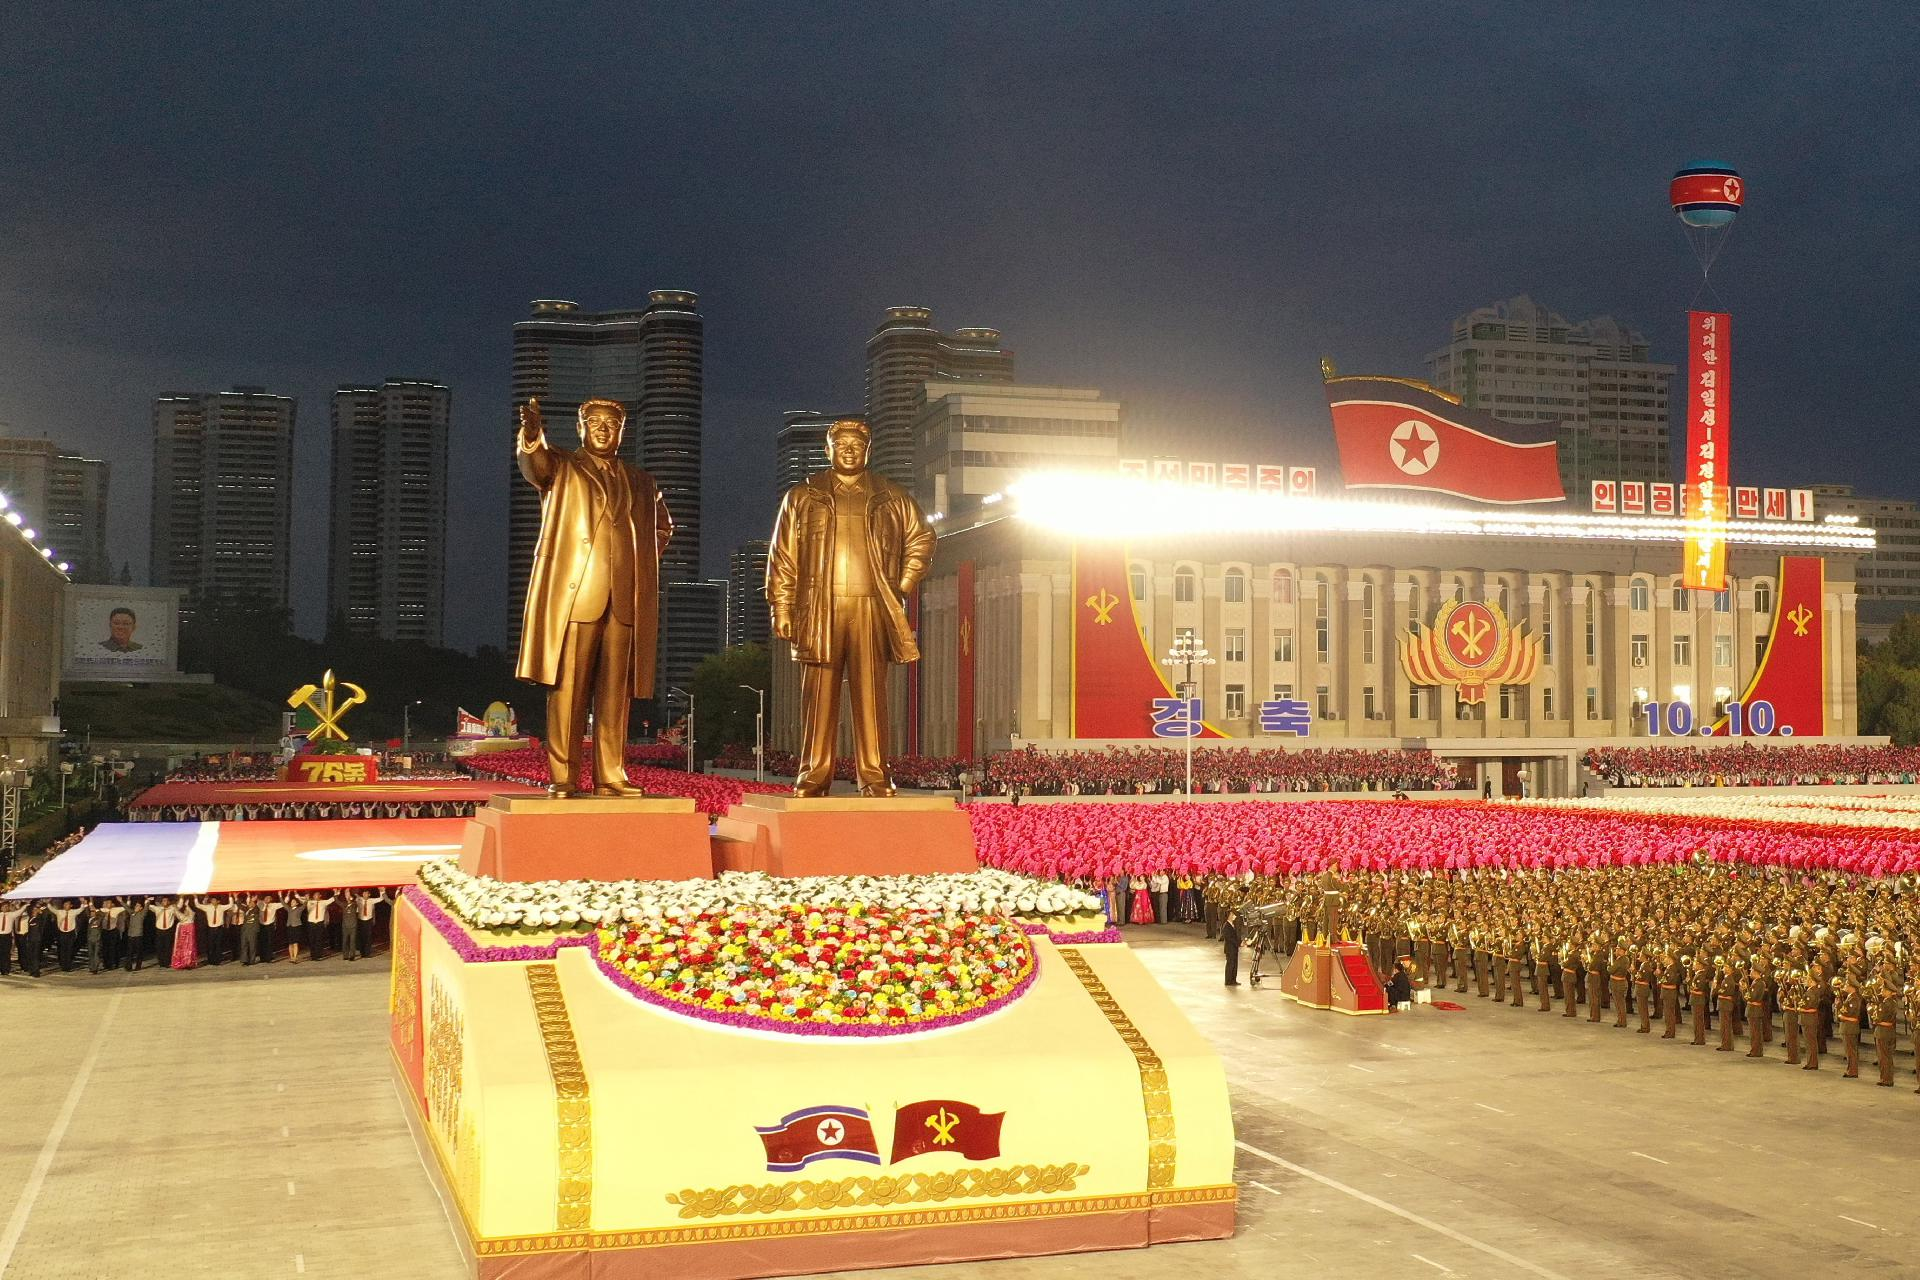 Mass demonstration for celebrating the 75th founding anniversary of the Workers' Party of Korea was held in splendour